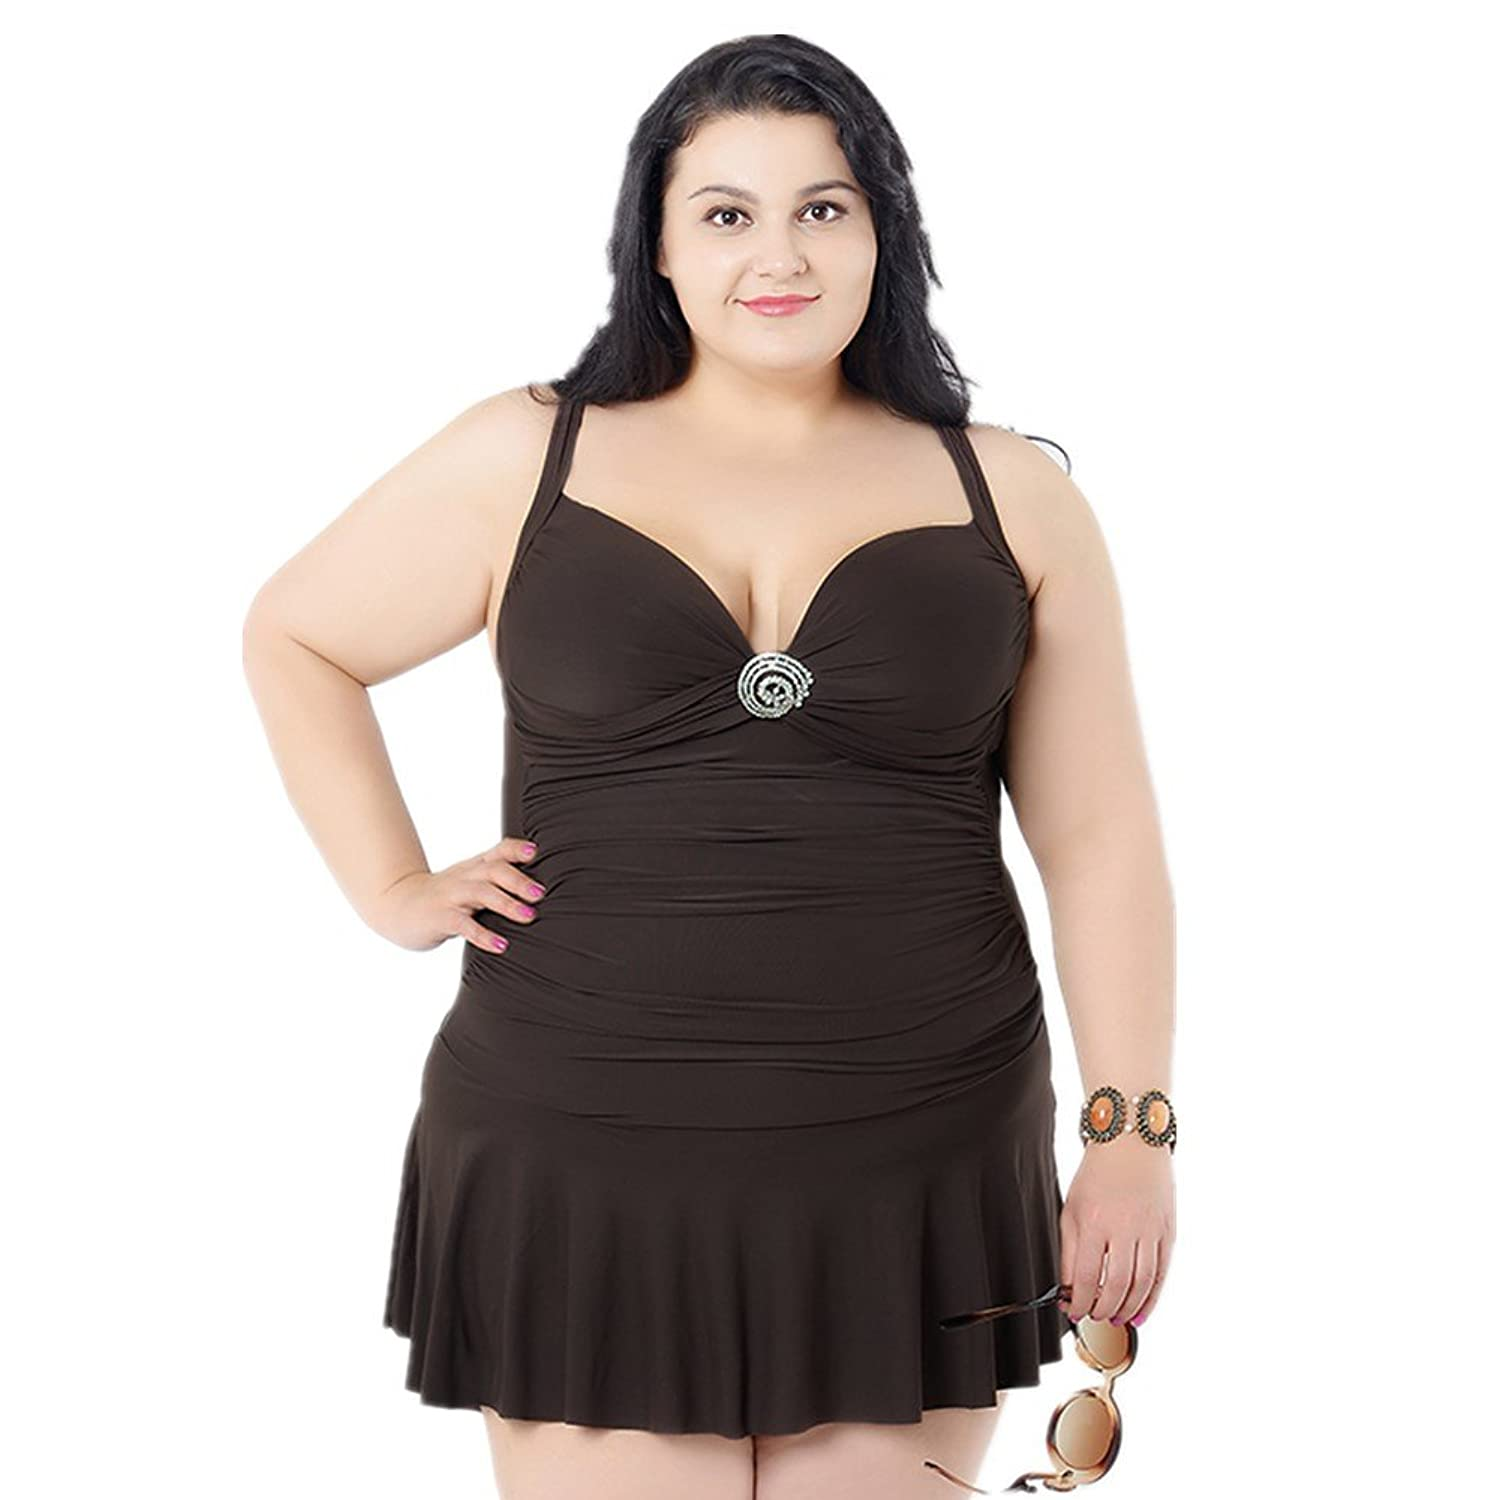 Women's Plus Size Solid Crossover One Piece Swimdress Swimsuit